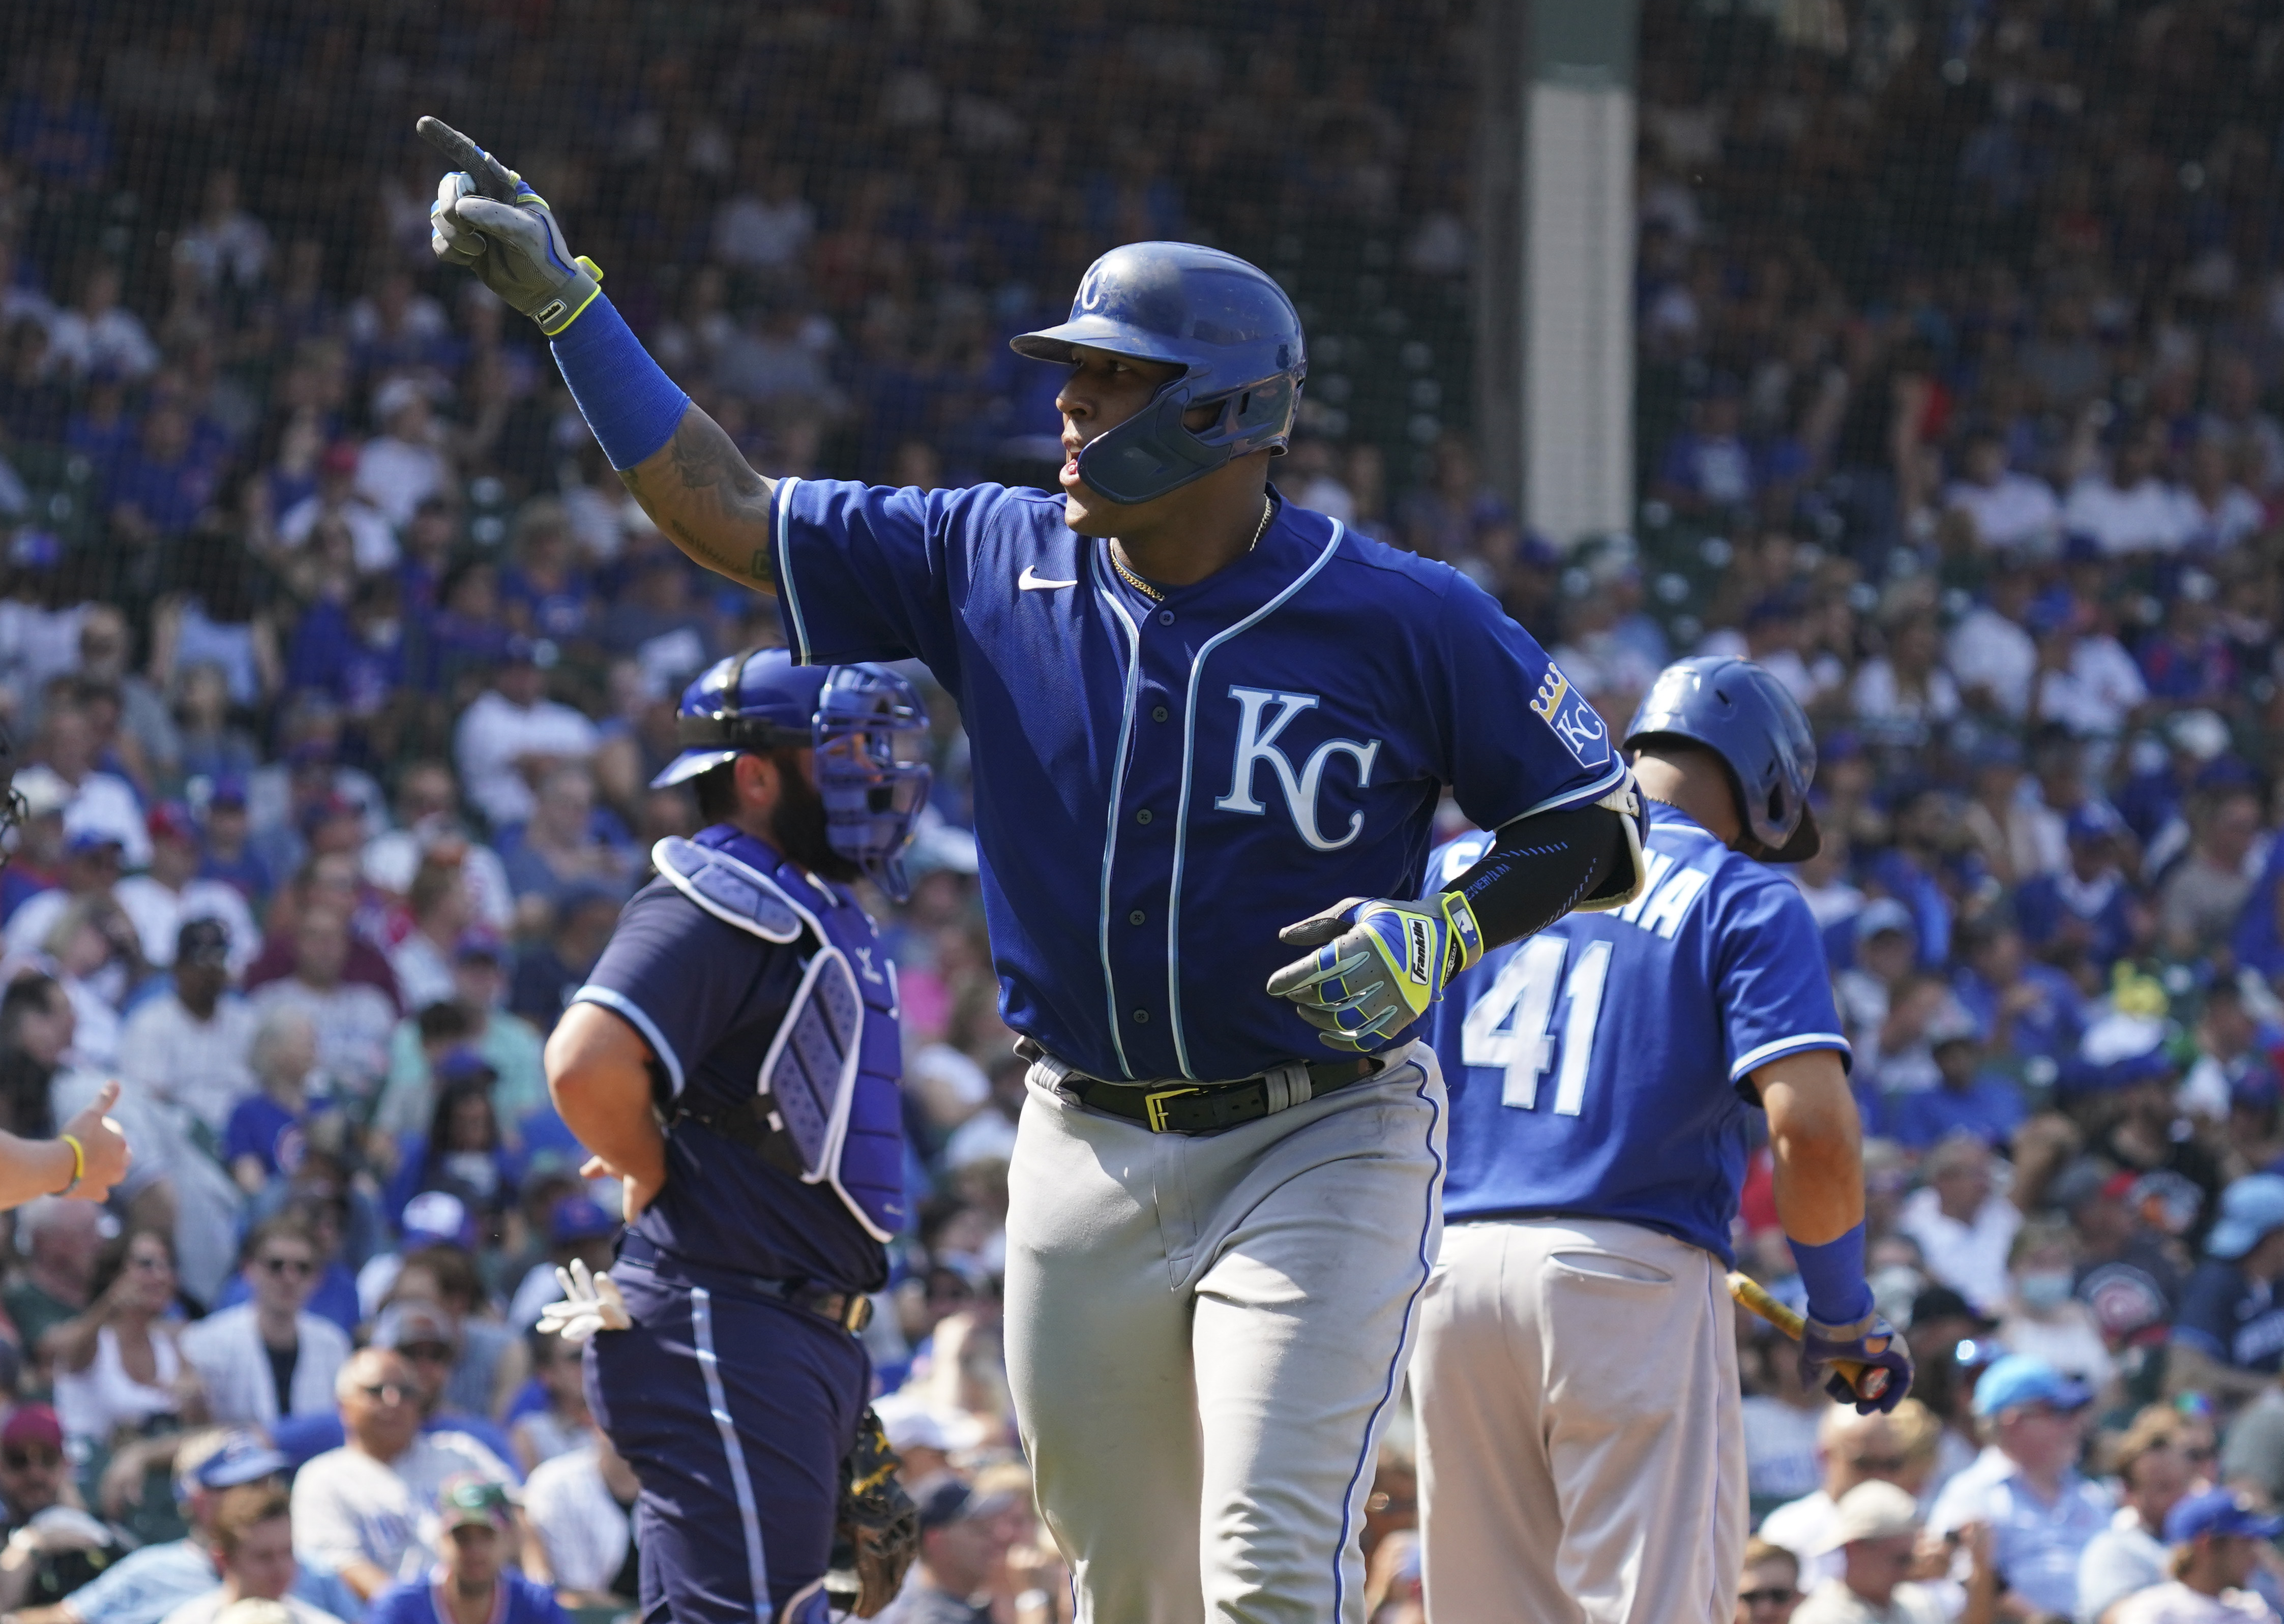 Salvador Perez #13 of the Kansas City Royals celebrates a home run during the sixth inning of a game against the Chicago Cubs at Wrigley Field on August 20, 2021 in Chicago, Illinois.